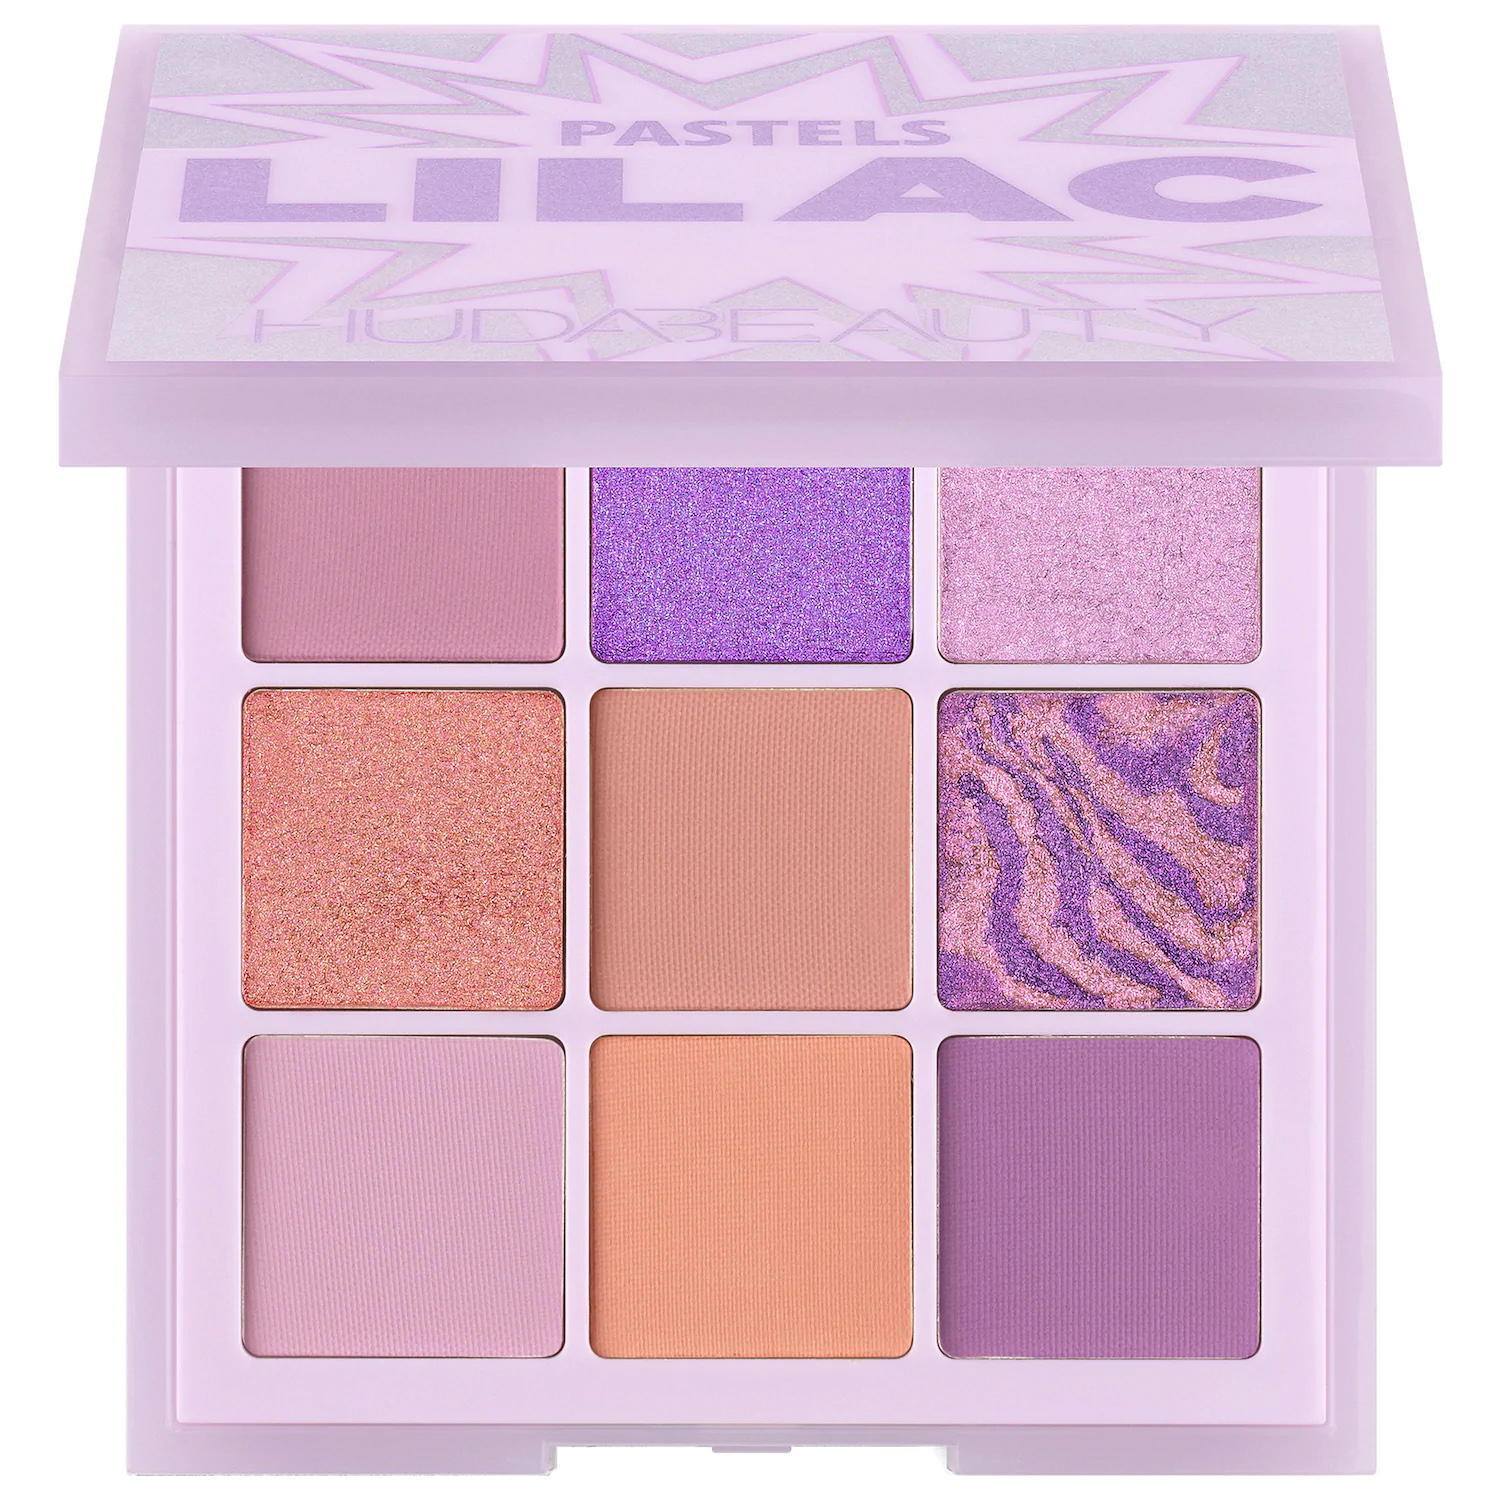 Huda Beauty Pastel Obsessions Eyeshadow Palette Lilac